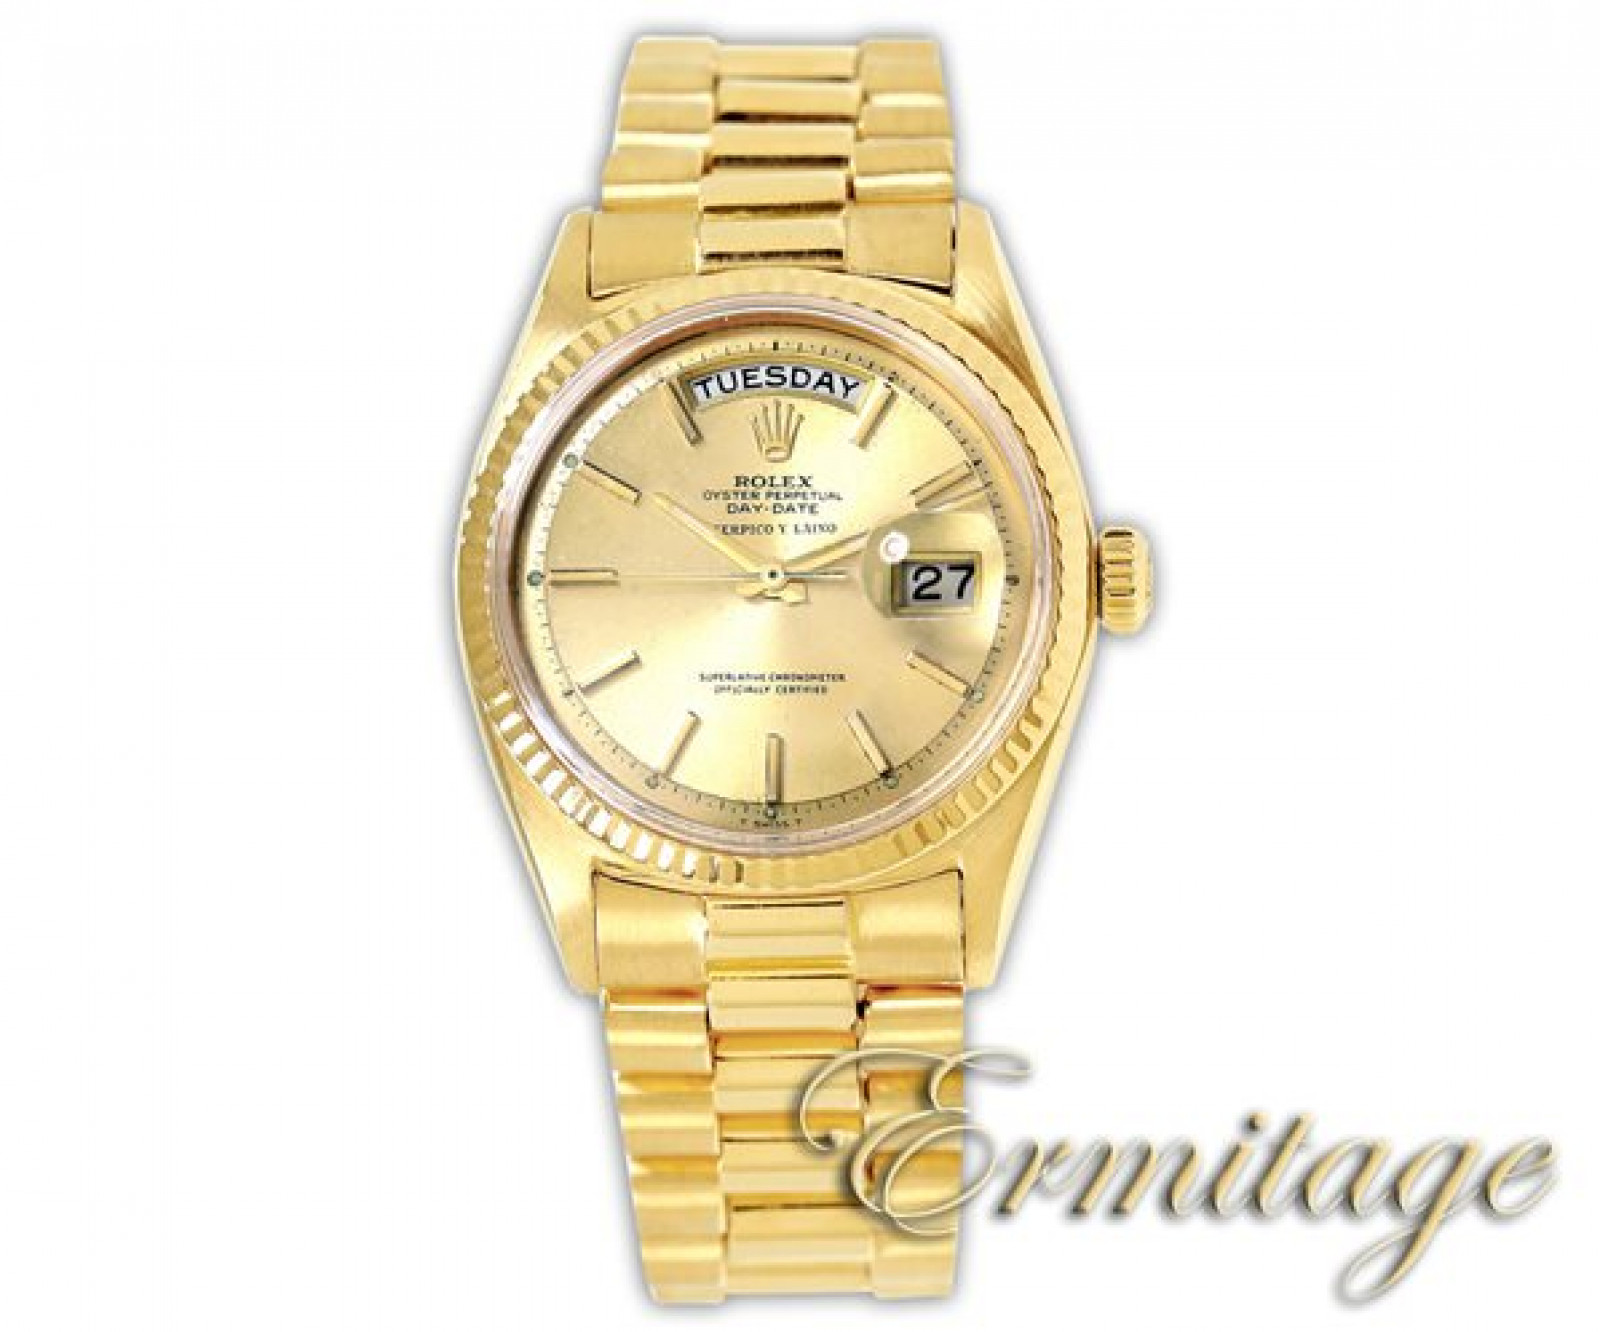 Vintage Rolex Day-Date 1803 Gold Year 1965 1965